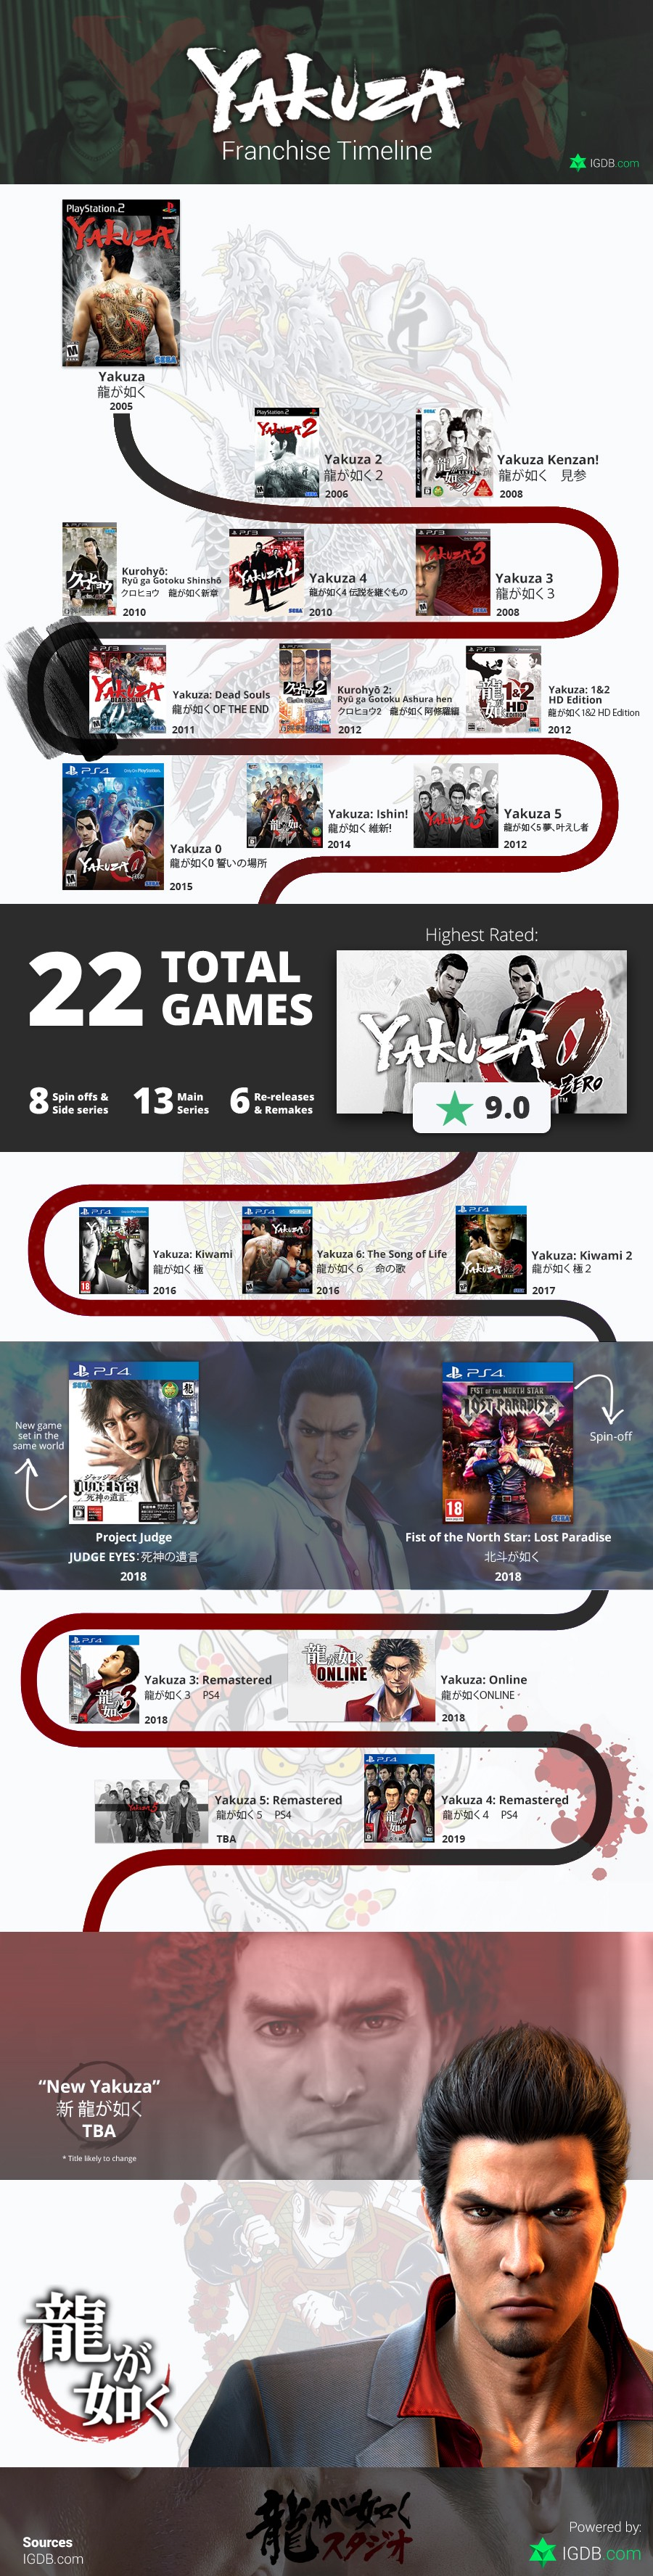 A guide to the Yakuza game franchise — with a twist